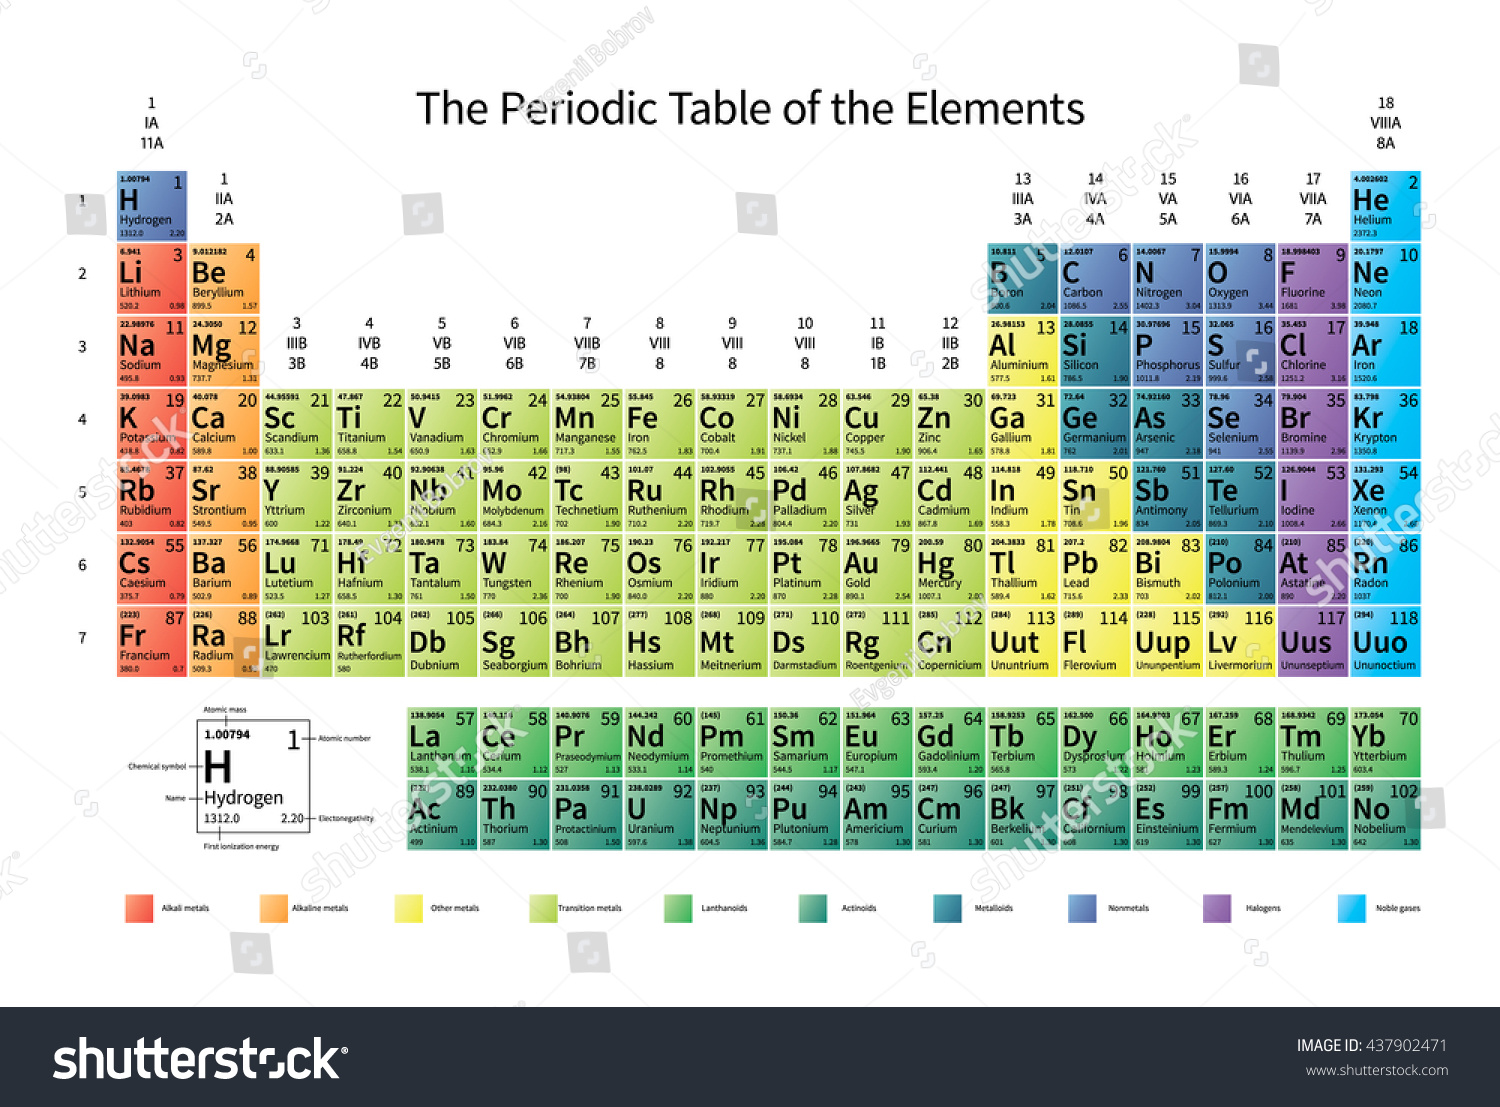 Electronegativity Periodic Table Image Showing Periodicity Of The